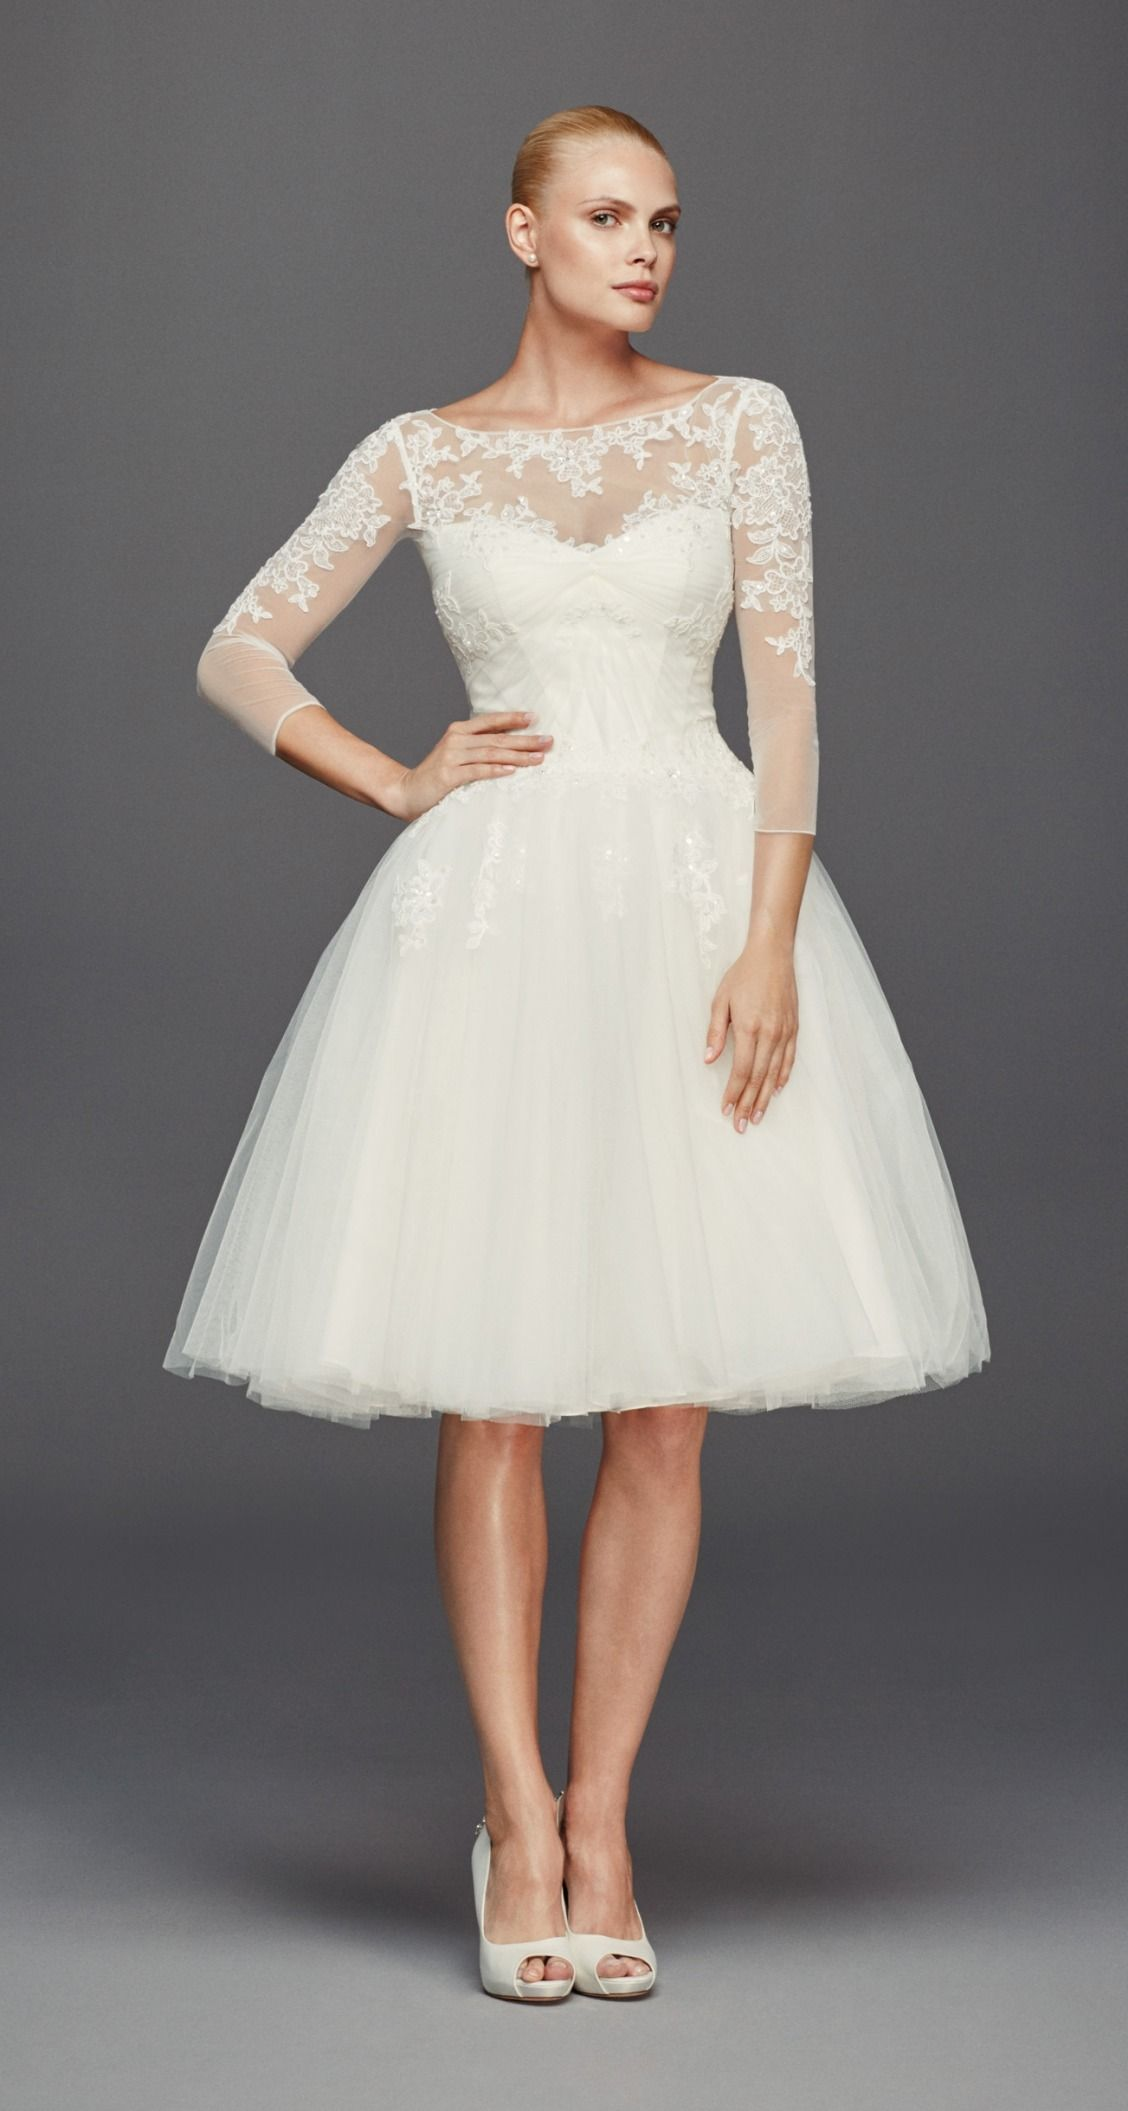 For The Ballerina Inspired Bride A Short Wedding Dress With A Full Skirt Is Meant Long Sleeve Short Wedding Dress Short Wedding Dress Wedding Dress Necklines [ 2111 x 1128 Pixel ]